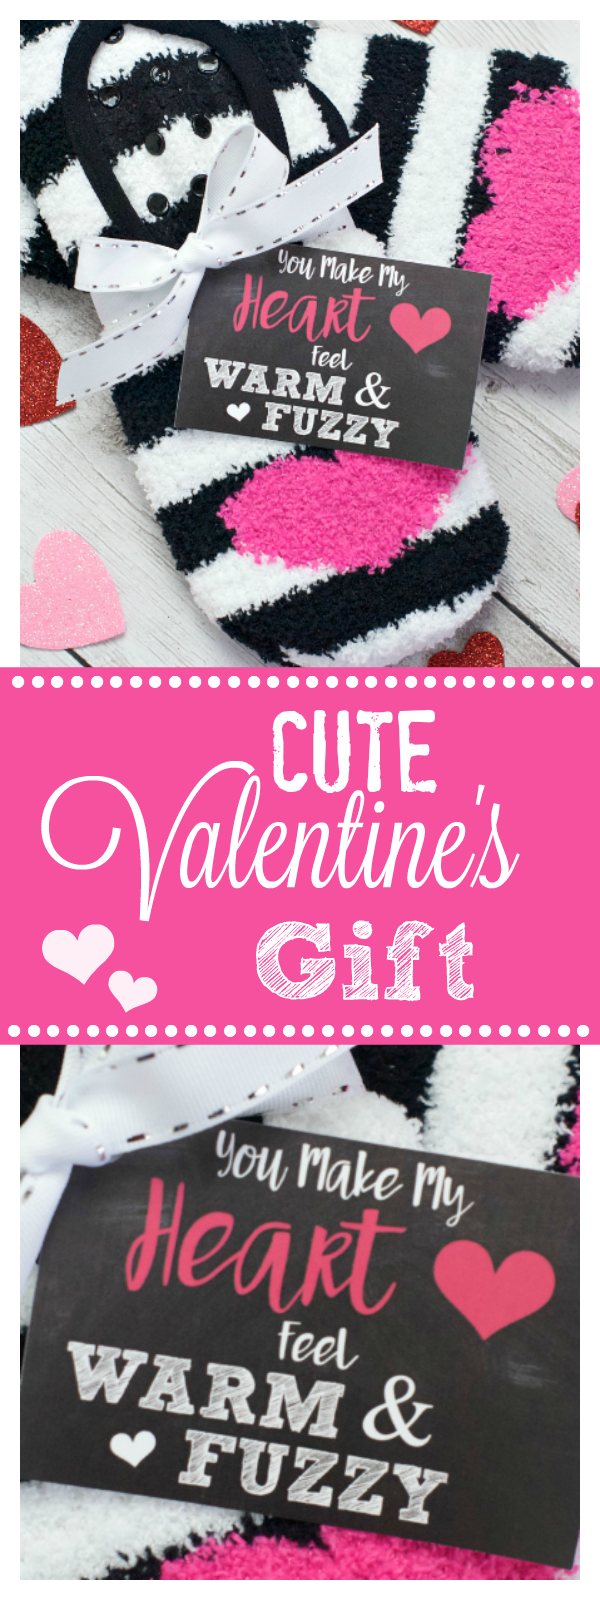 Fun Valentine Gifts for Kids or Friends. Give some cozy socks this Valentine's Day! We have this cute tag all ready for you to print. It's a fun and simple Valentine's Day gift. #valentinegift #valentinegiftidea #valentinesdaygift #funvalentinegift